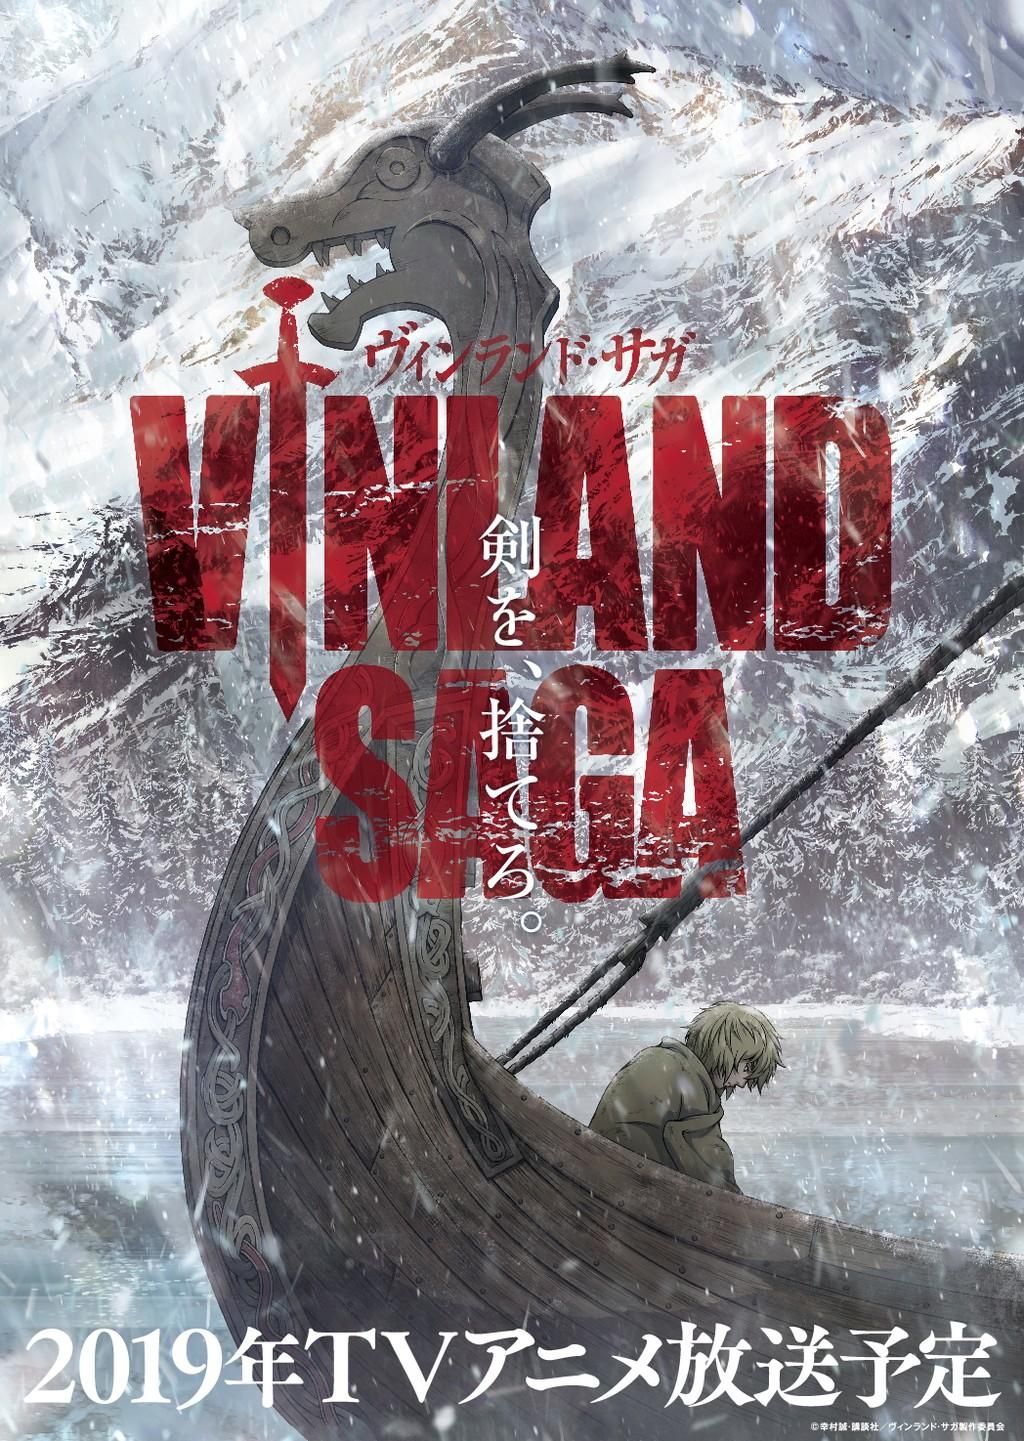 main visual